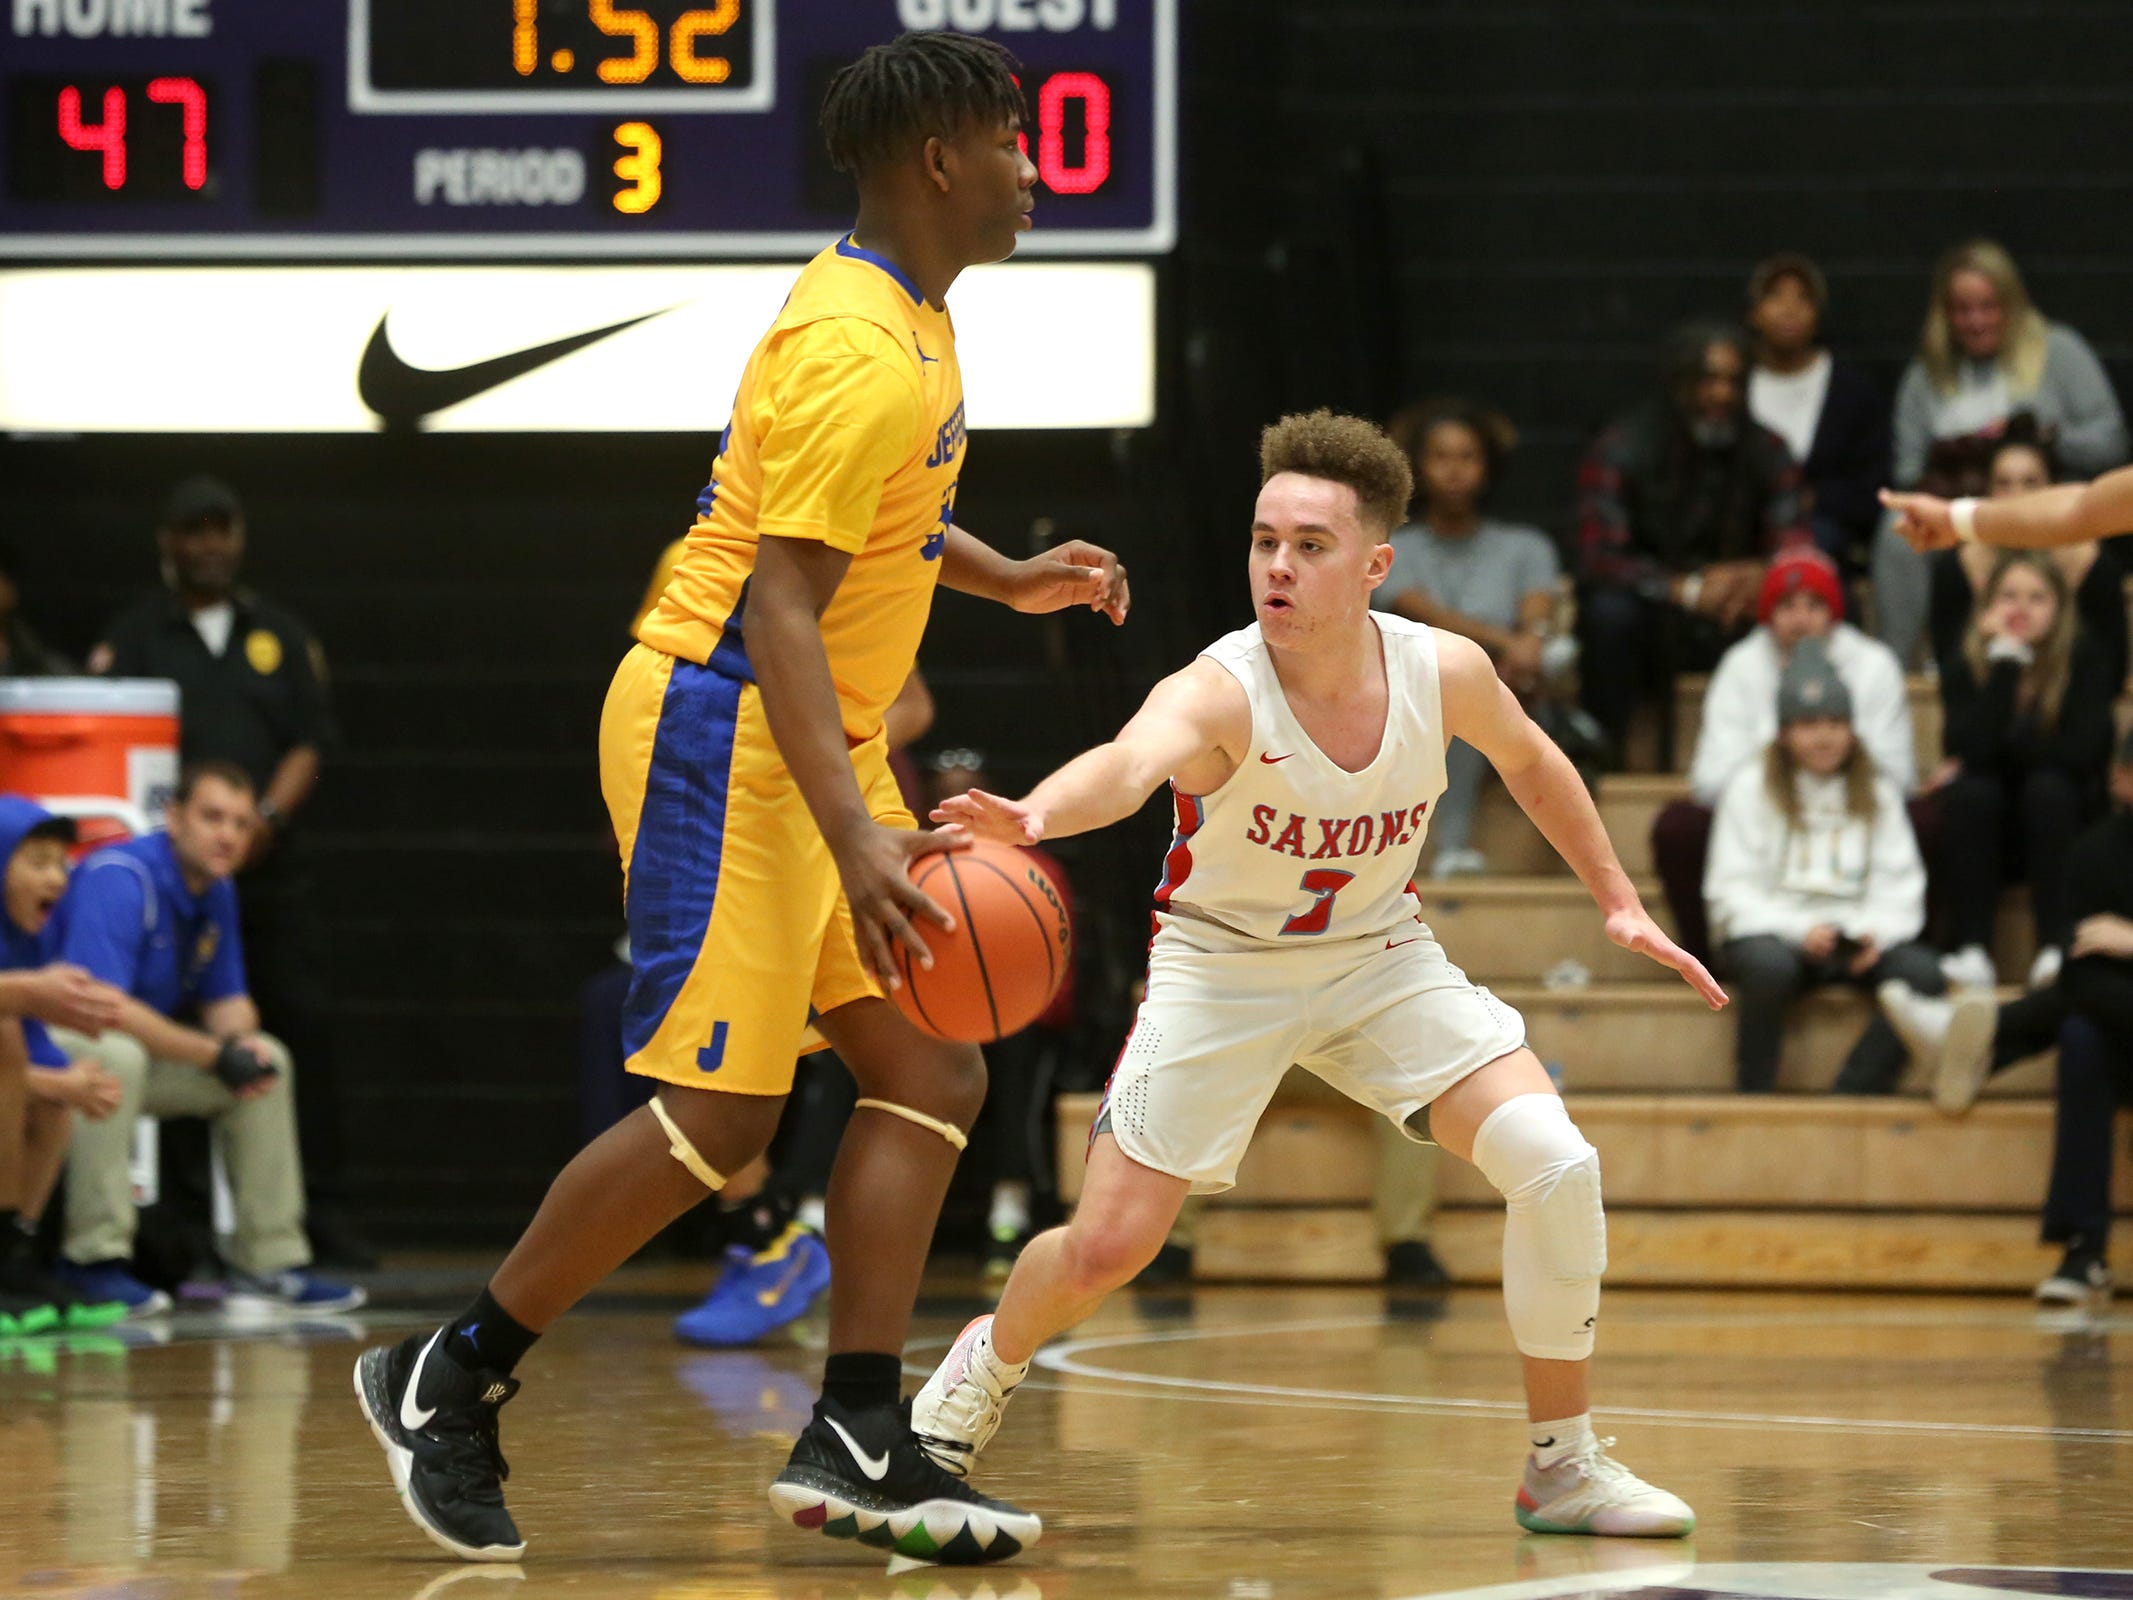 South Salem's Trey Galbraith (3) guards during the South Salem vs. Jefferson boys basketball OSAA 6A semifinal game at Chiles Center in Portland on Friday, March 8, 2019.